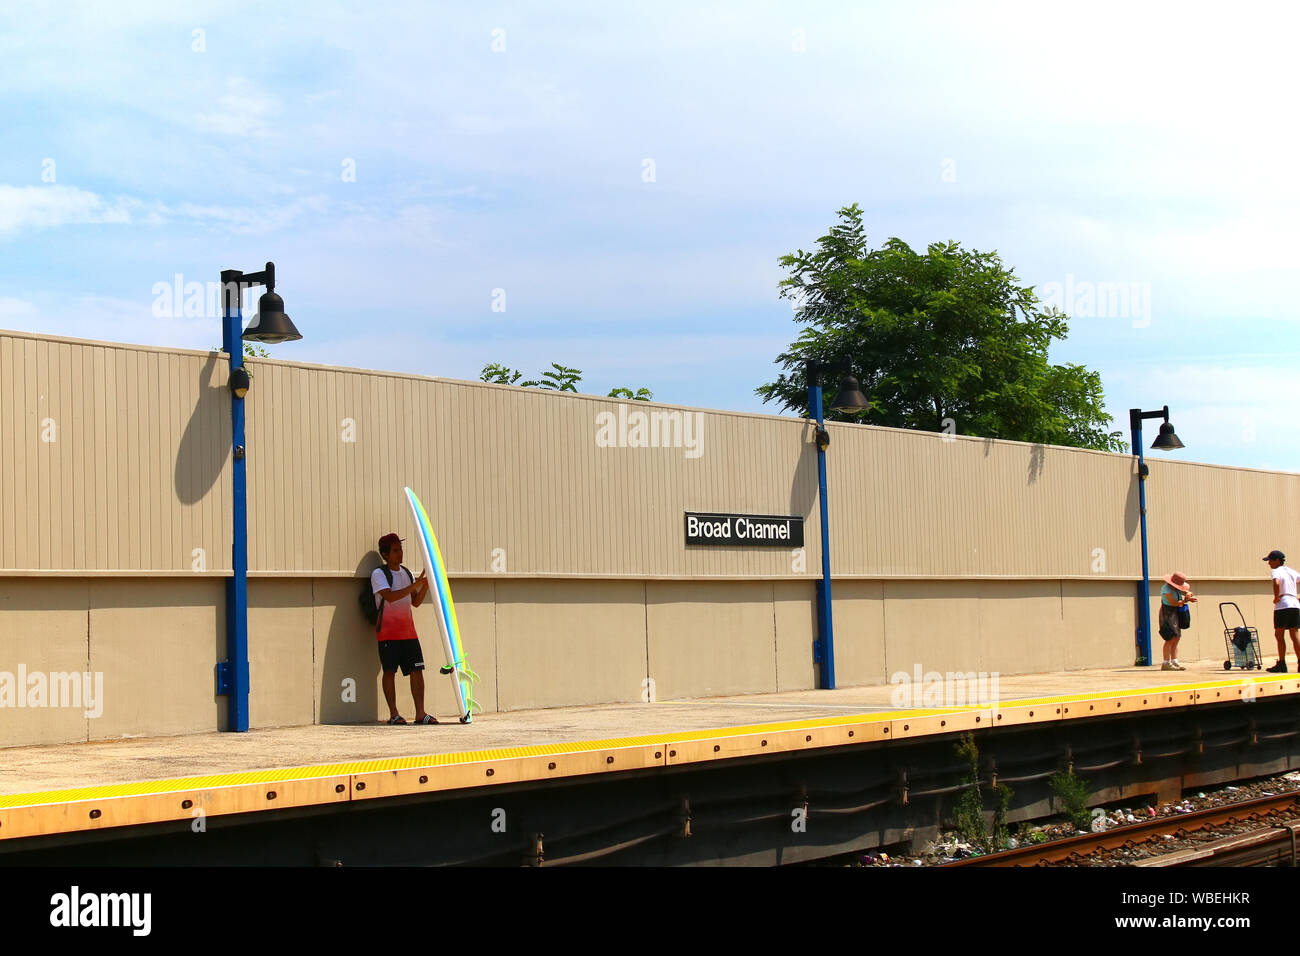 Lone surfer with a surfboard awaits subway train on the Broad Channel platform on a hot summer afternoon on August 18th, 2019 in Queens, New York, USA Stock Photo